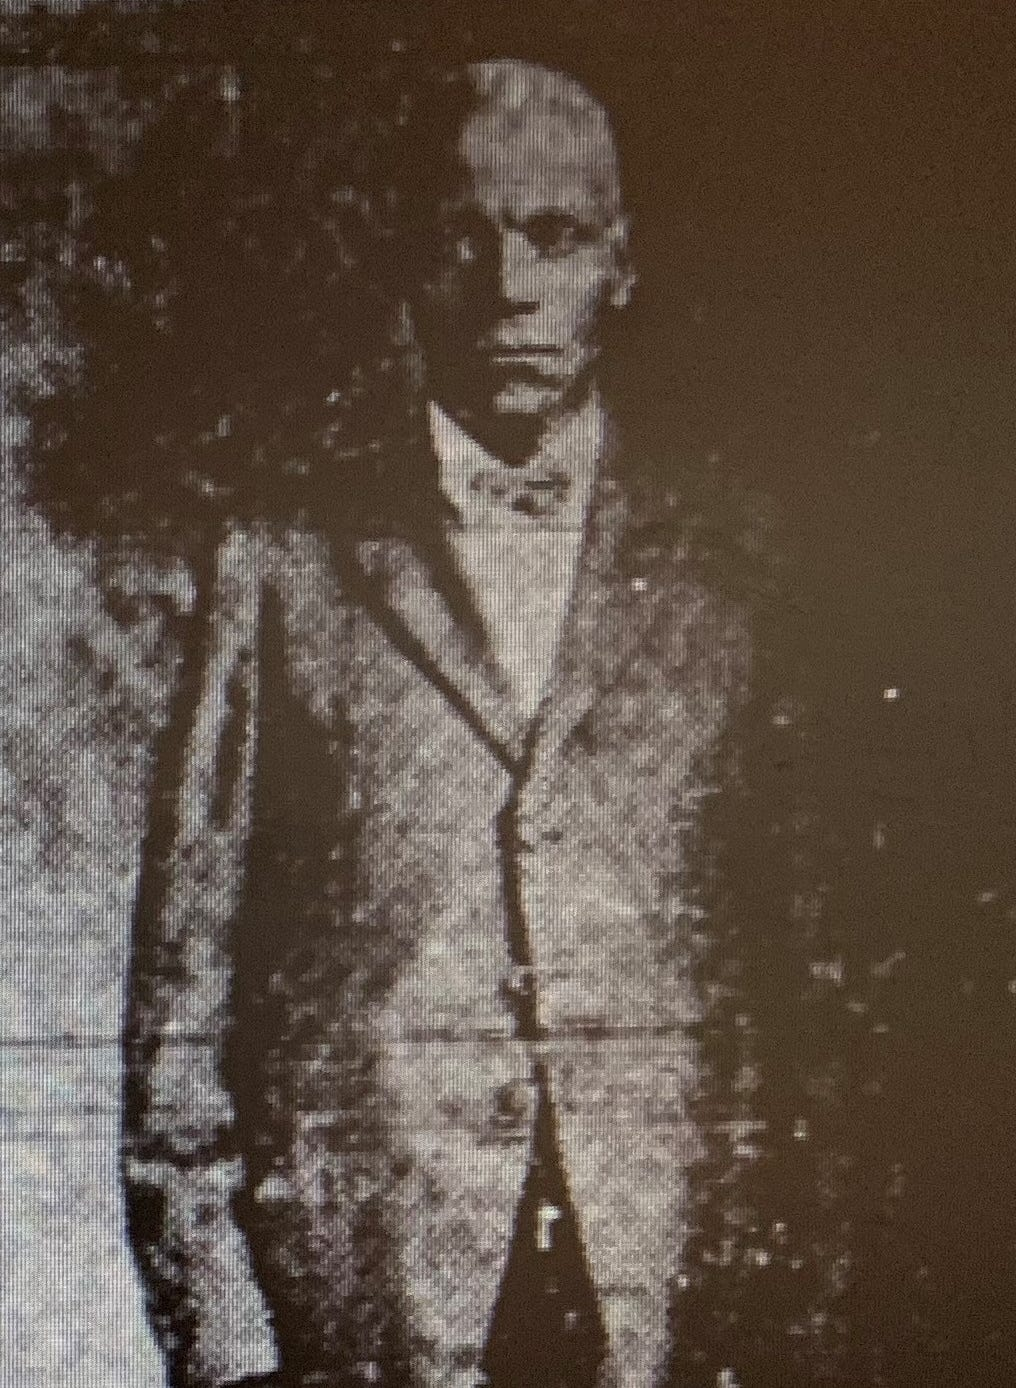 Elijah Lavender as depicted in an advertisement in the February 29, 1932 edition of the Selma Times. Lavender was a former federal official who, according to the Selma Times, owned 22 homes in Selma by 1932. Lavender provided Wold with information on Jeremiah Haralson's death that he got secondhand.